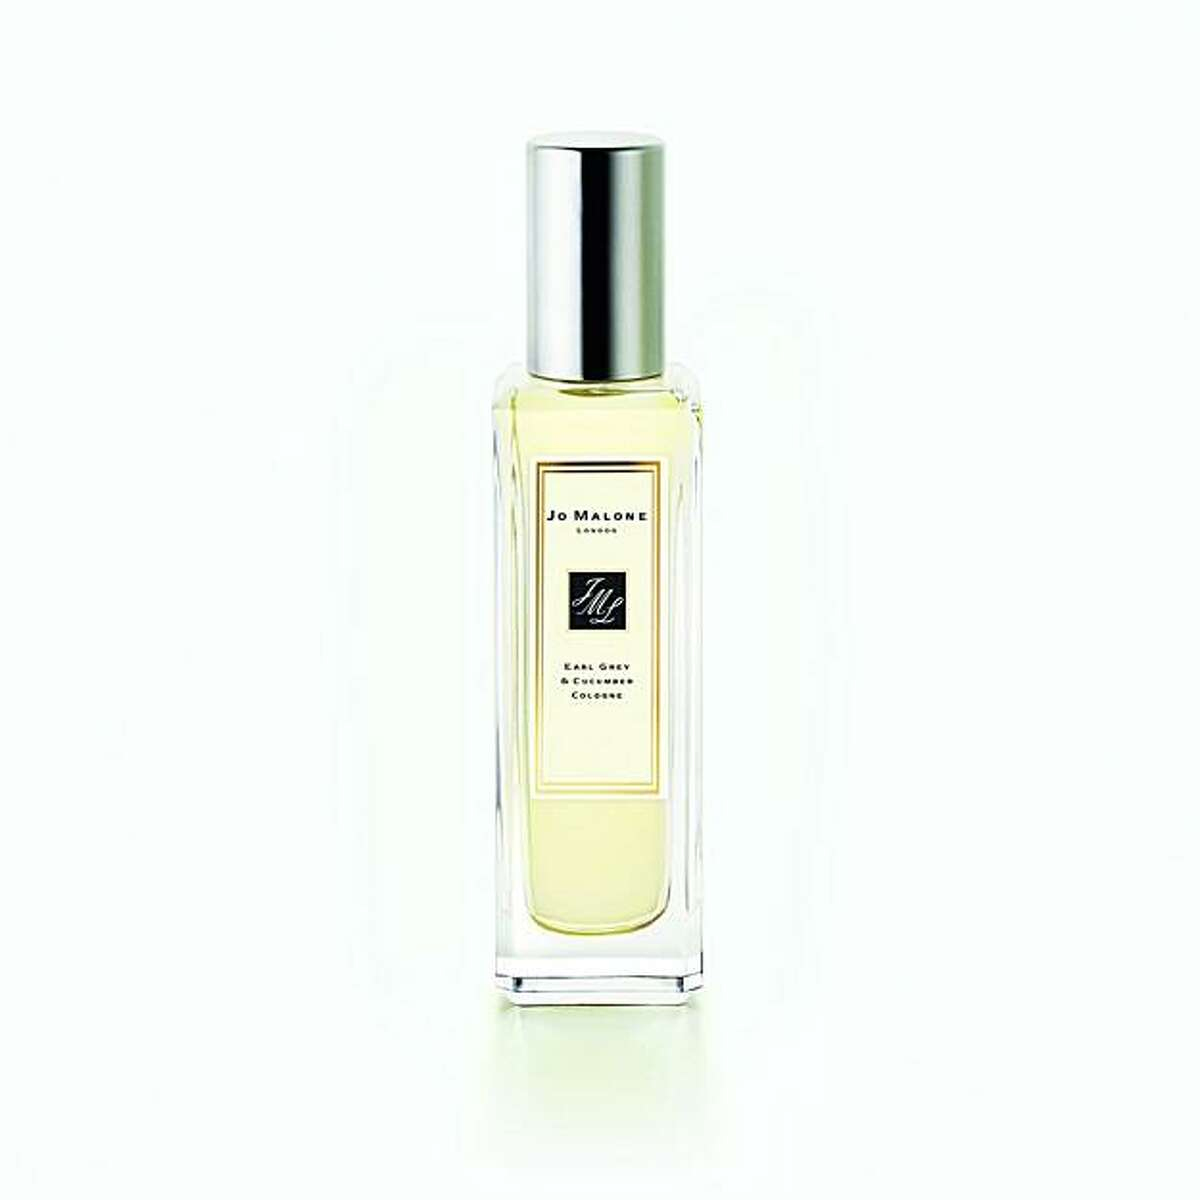 new cologne by Jo Malone